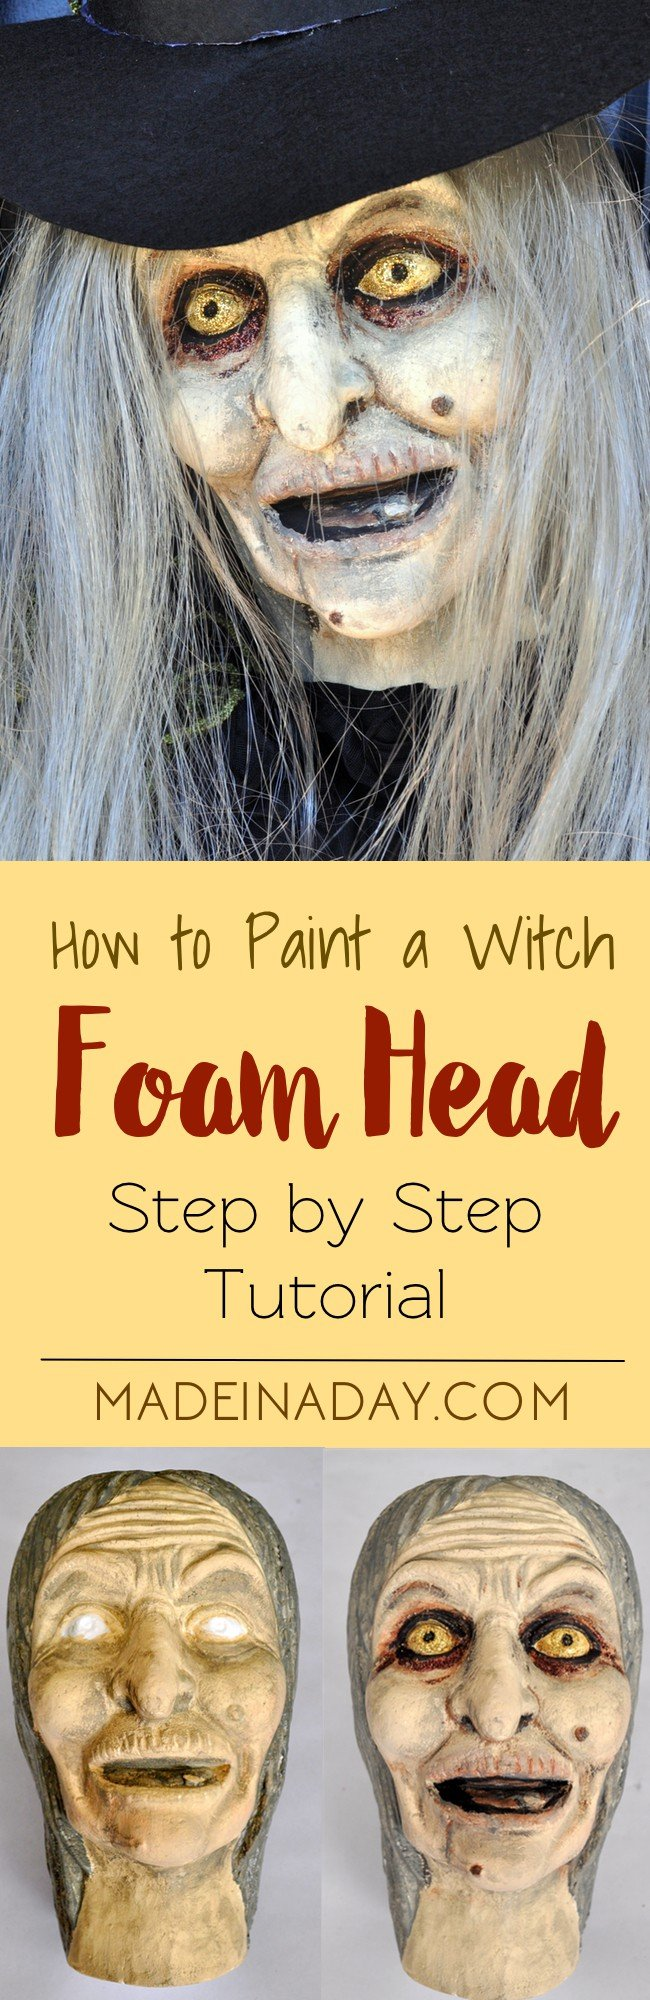 Wicked Witch Halloween Wreath Paint a foam witch head and add a grey wig and make it the centerpiece to a Halloween Wreath, paint a witch face, tutorial on madeinaday.com